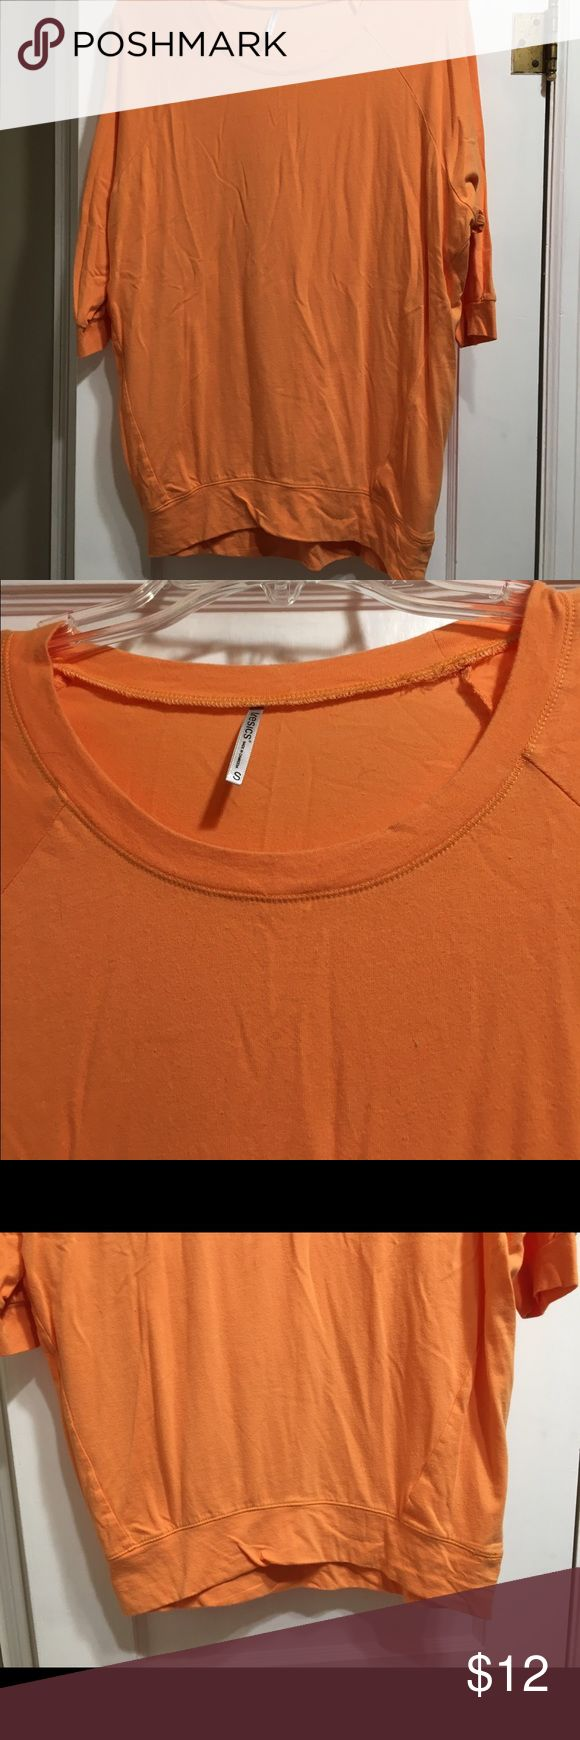 Mint Julep Orange Slouchy Dolman Tunic Small Mint Julep Boutique slouchy Dolman Tunic in orange, generous comfortable Tunic size small, perfect for leggings and a scarf..  3/4 Sleeve.  Very good condition, only wore once, from a smoke free home. 95% cotton 5% spandex. Tresics Tops Tunics